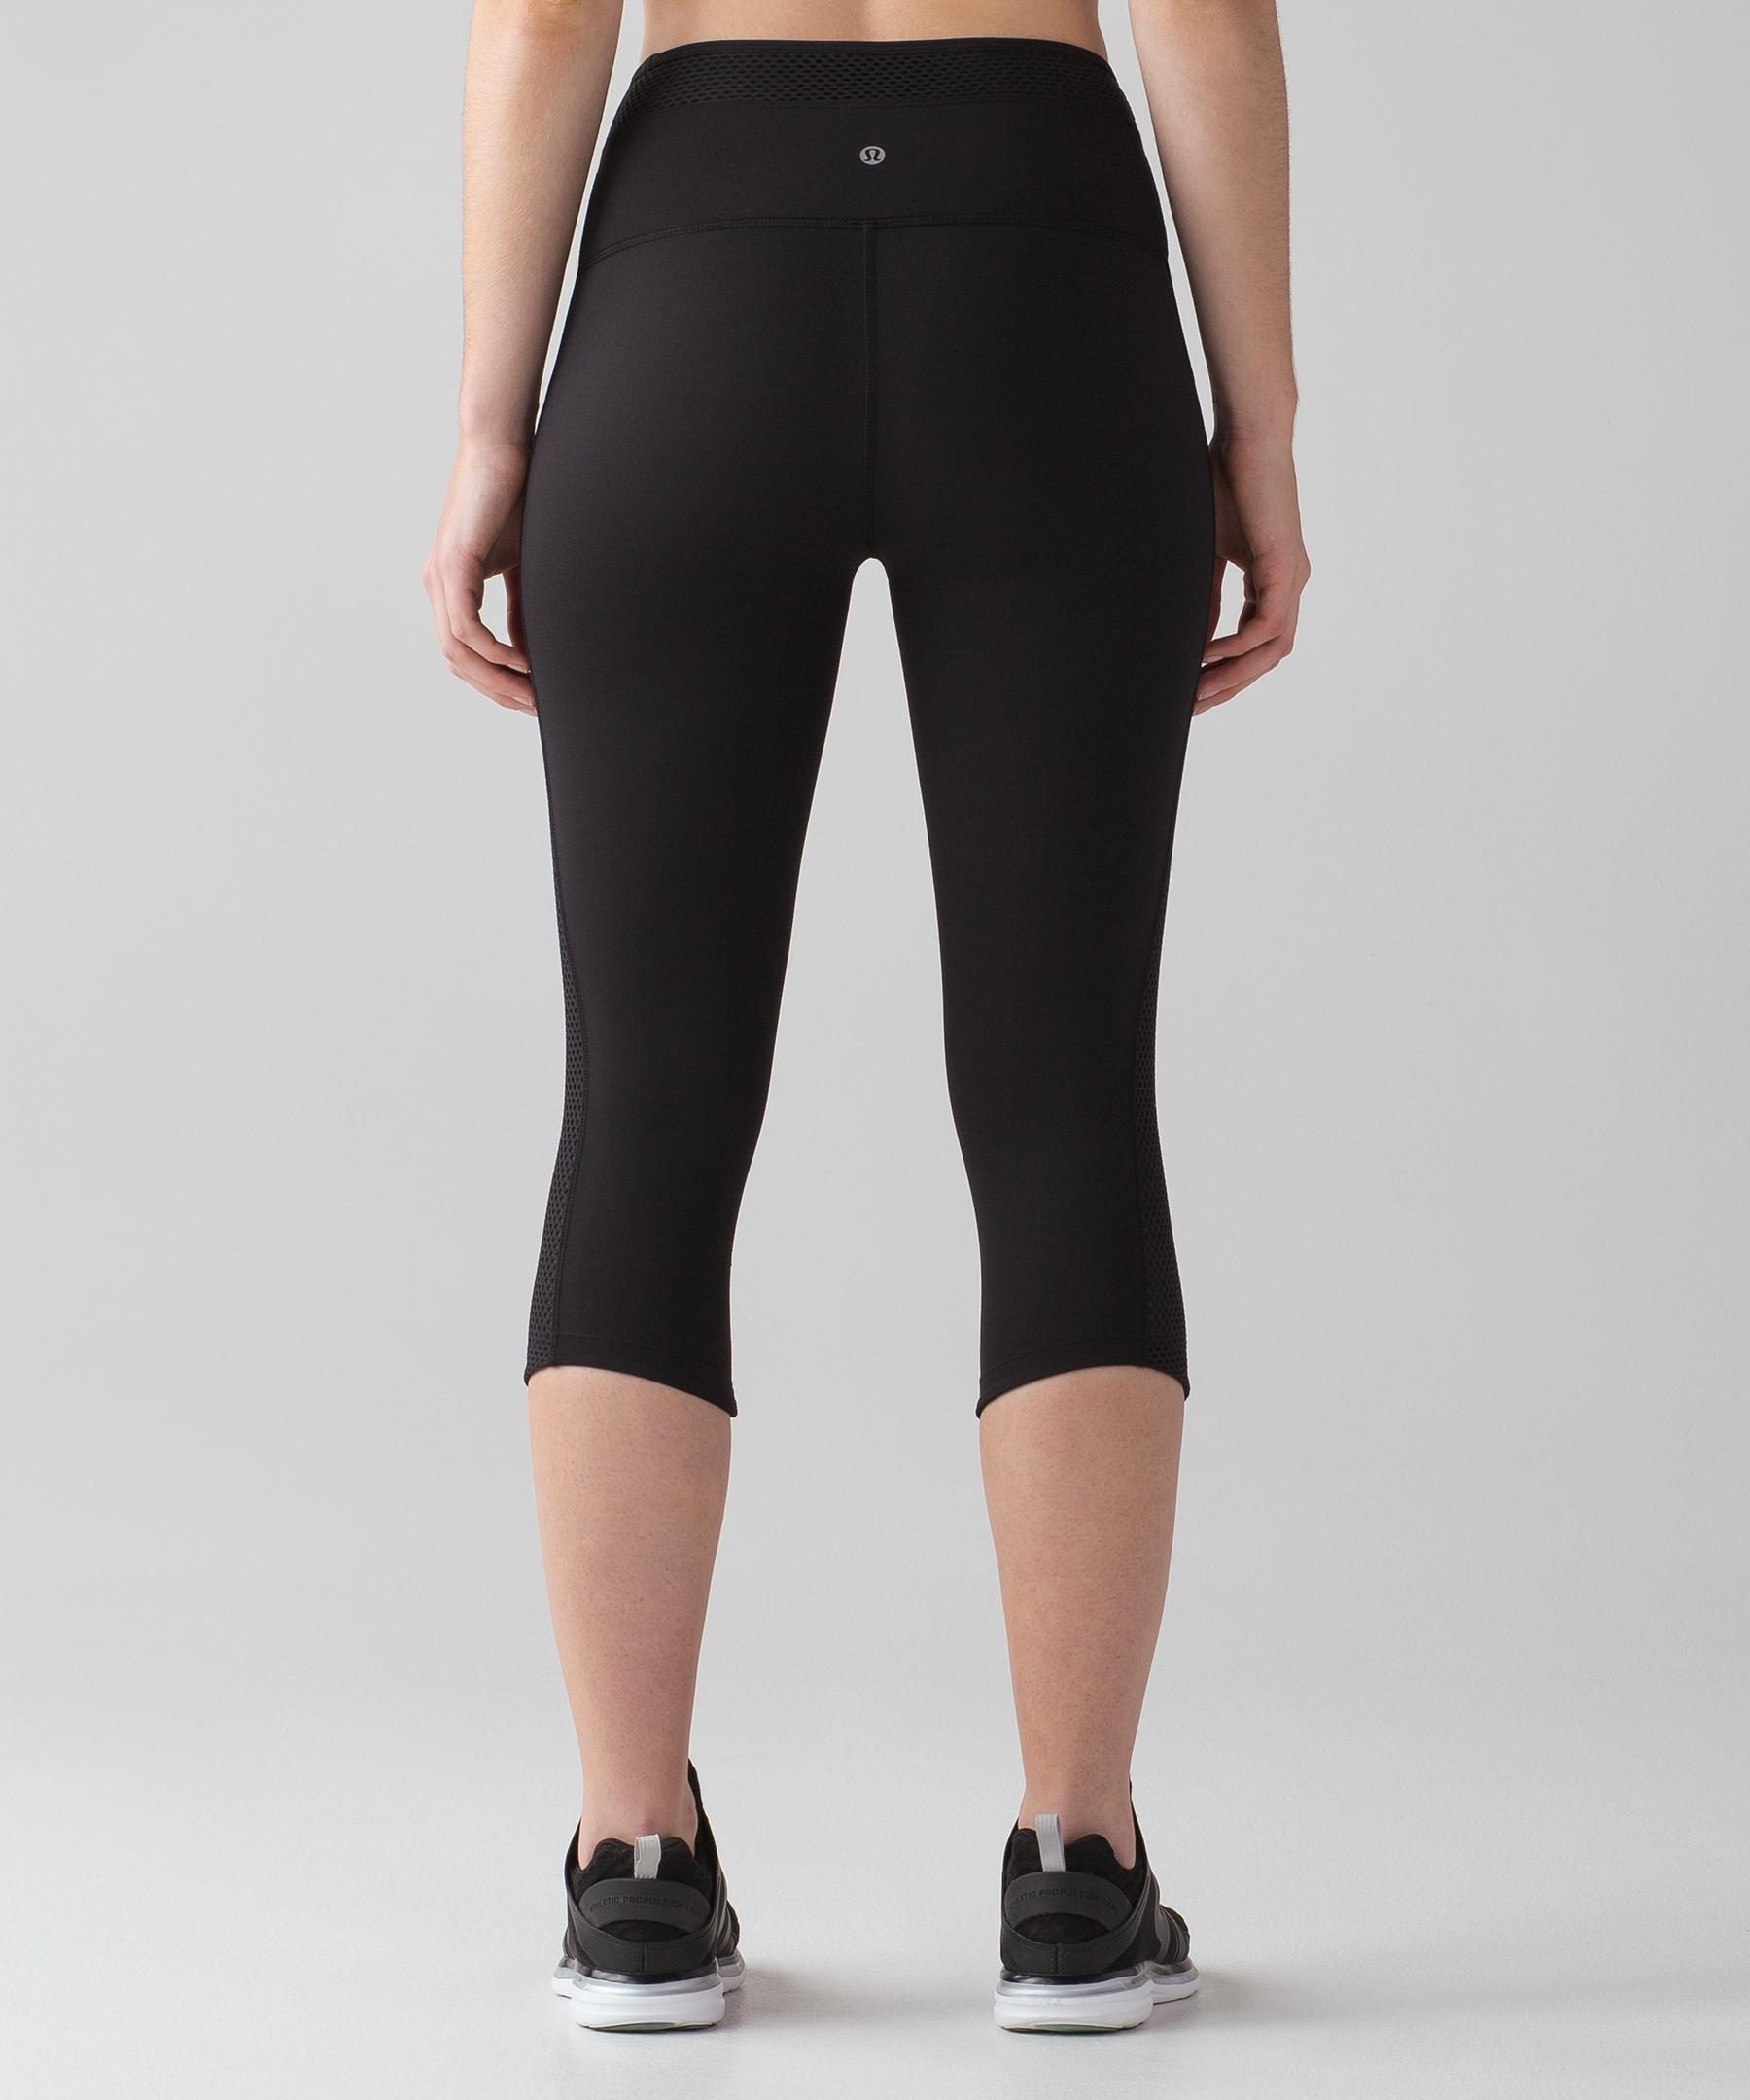 a8e2240f89d6ec Gallery. Previously sold at: lululemon athletica · Women's Gauze Pants  Women's Coated Leggings ...